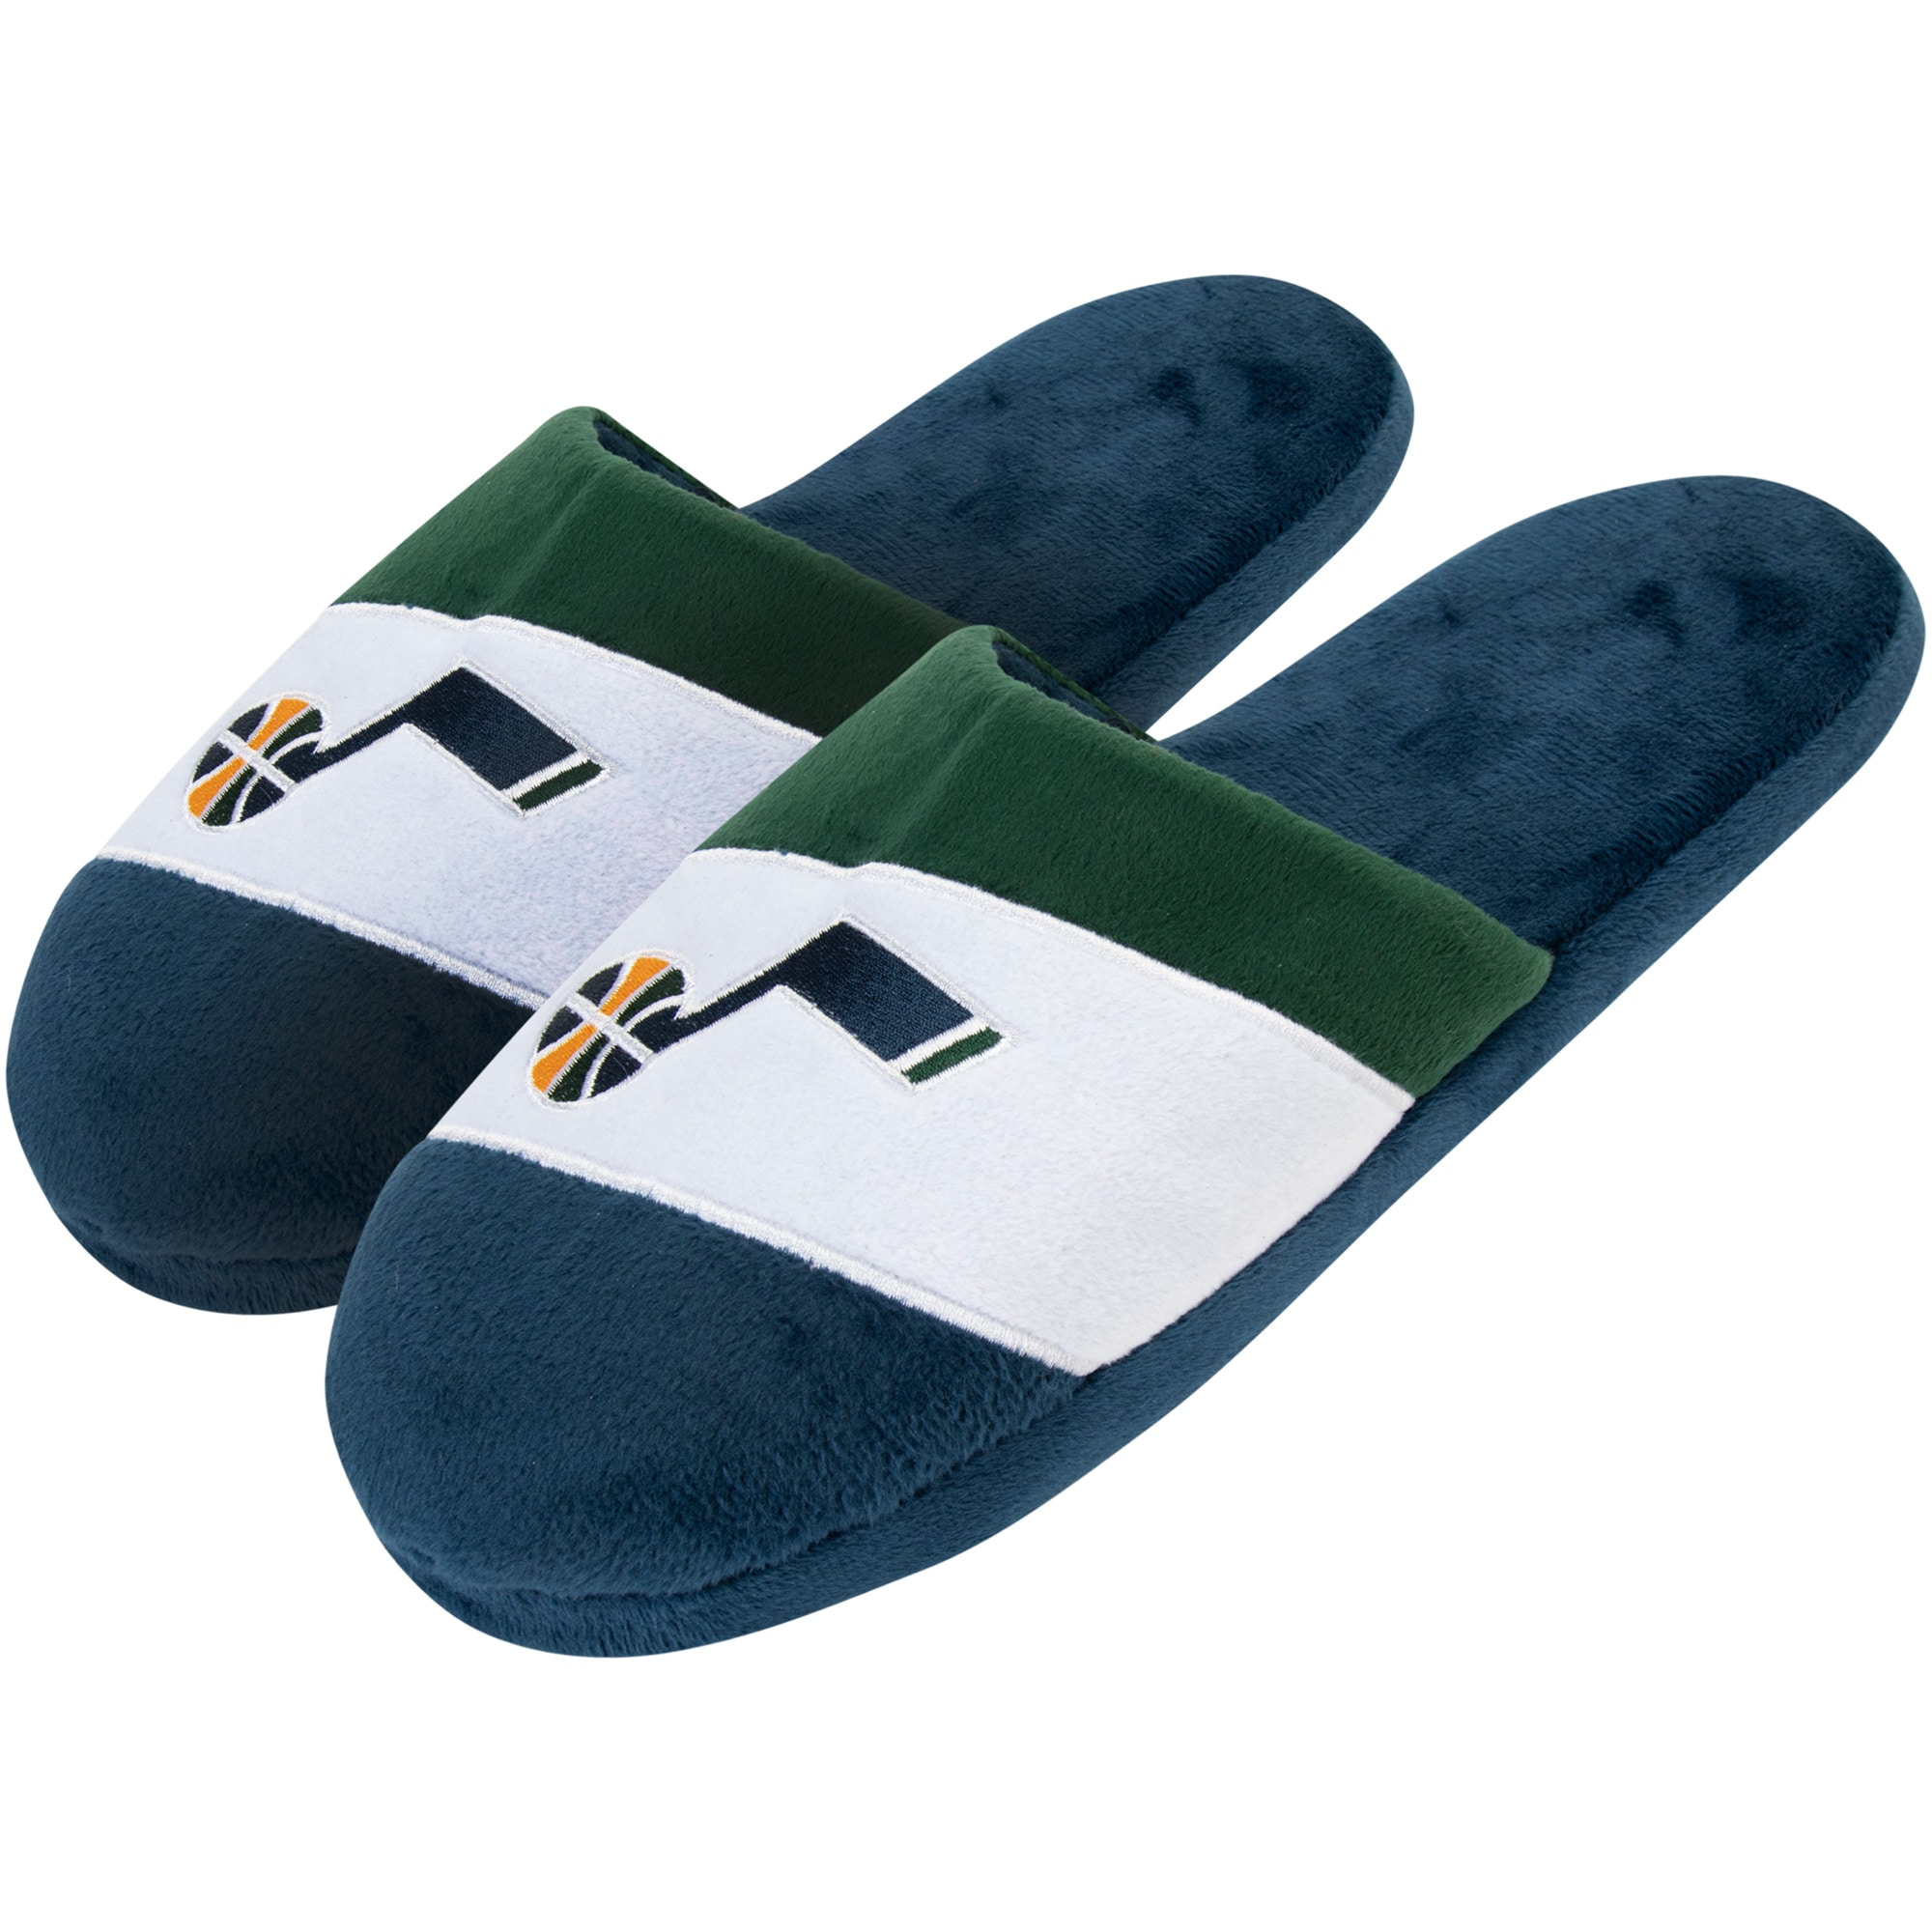 Utah Jazz Team Colorblock Slide Slippers